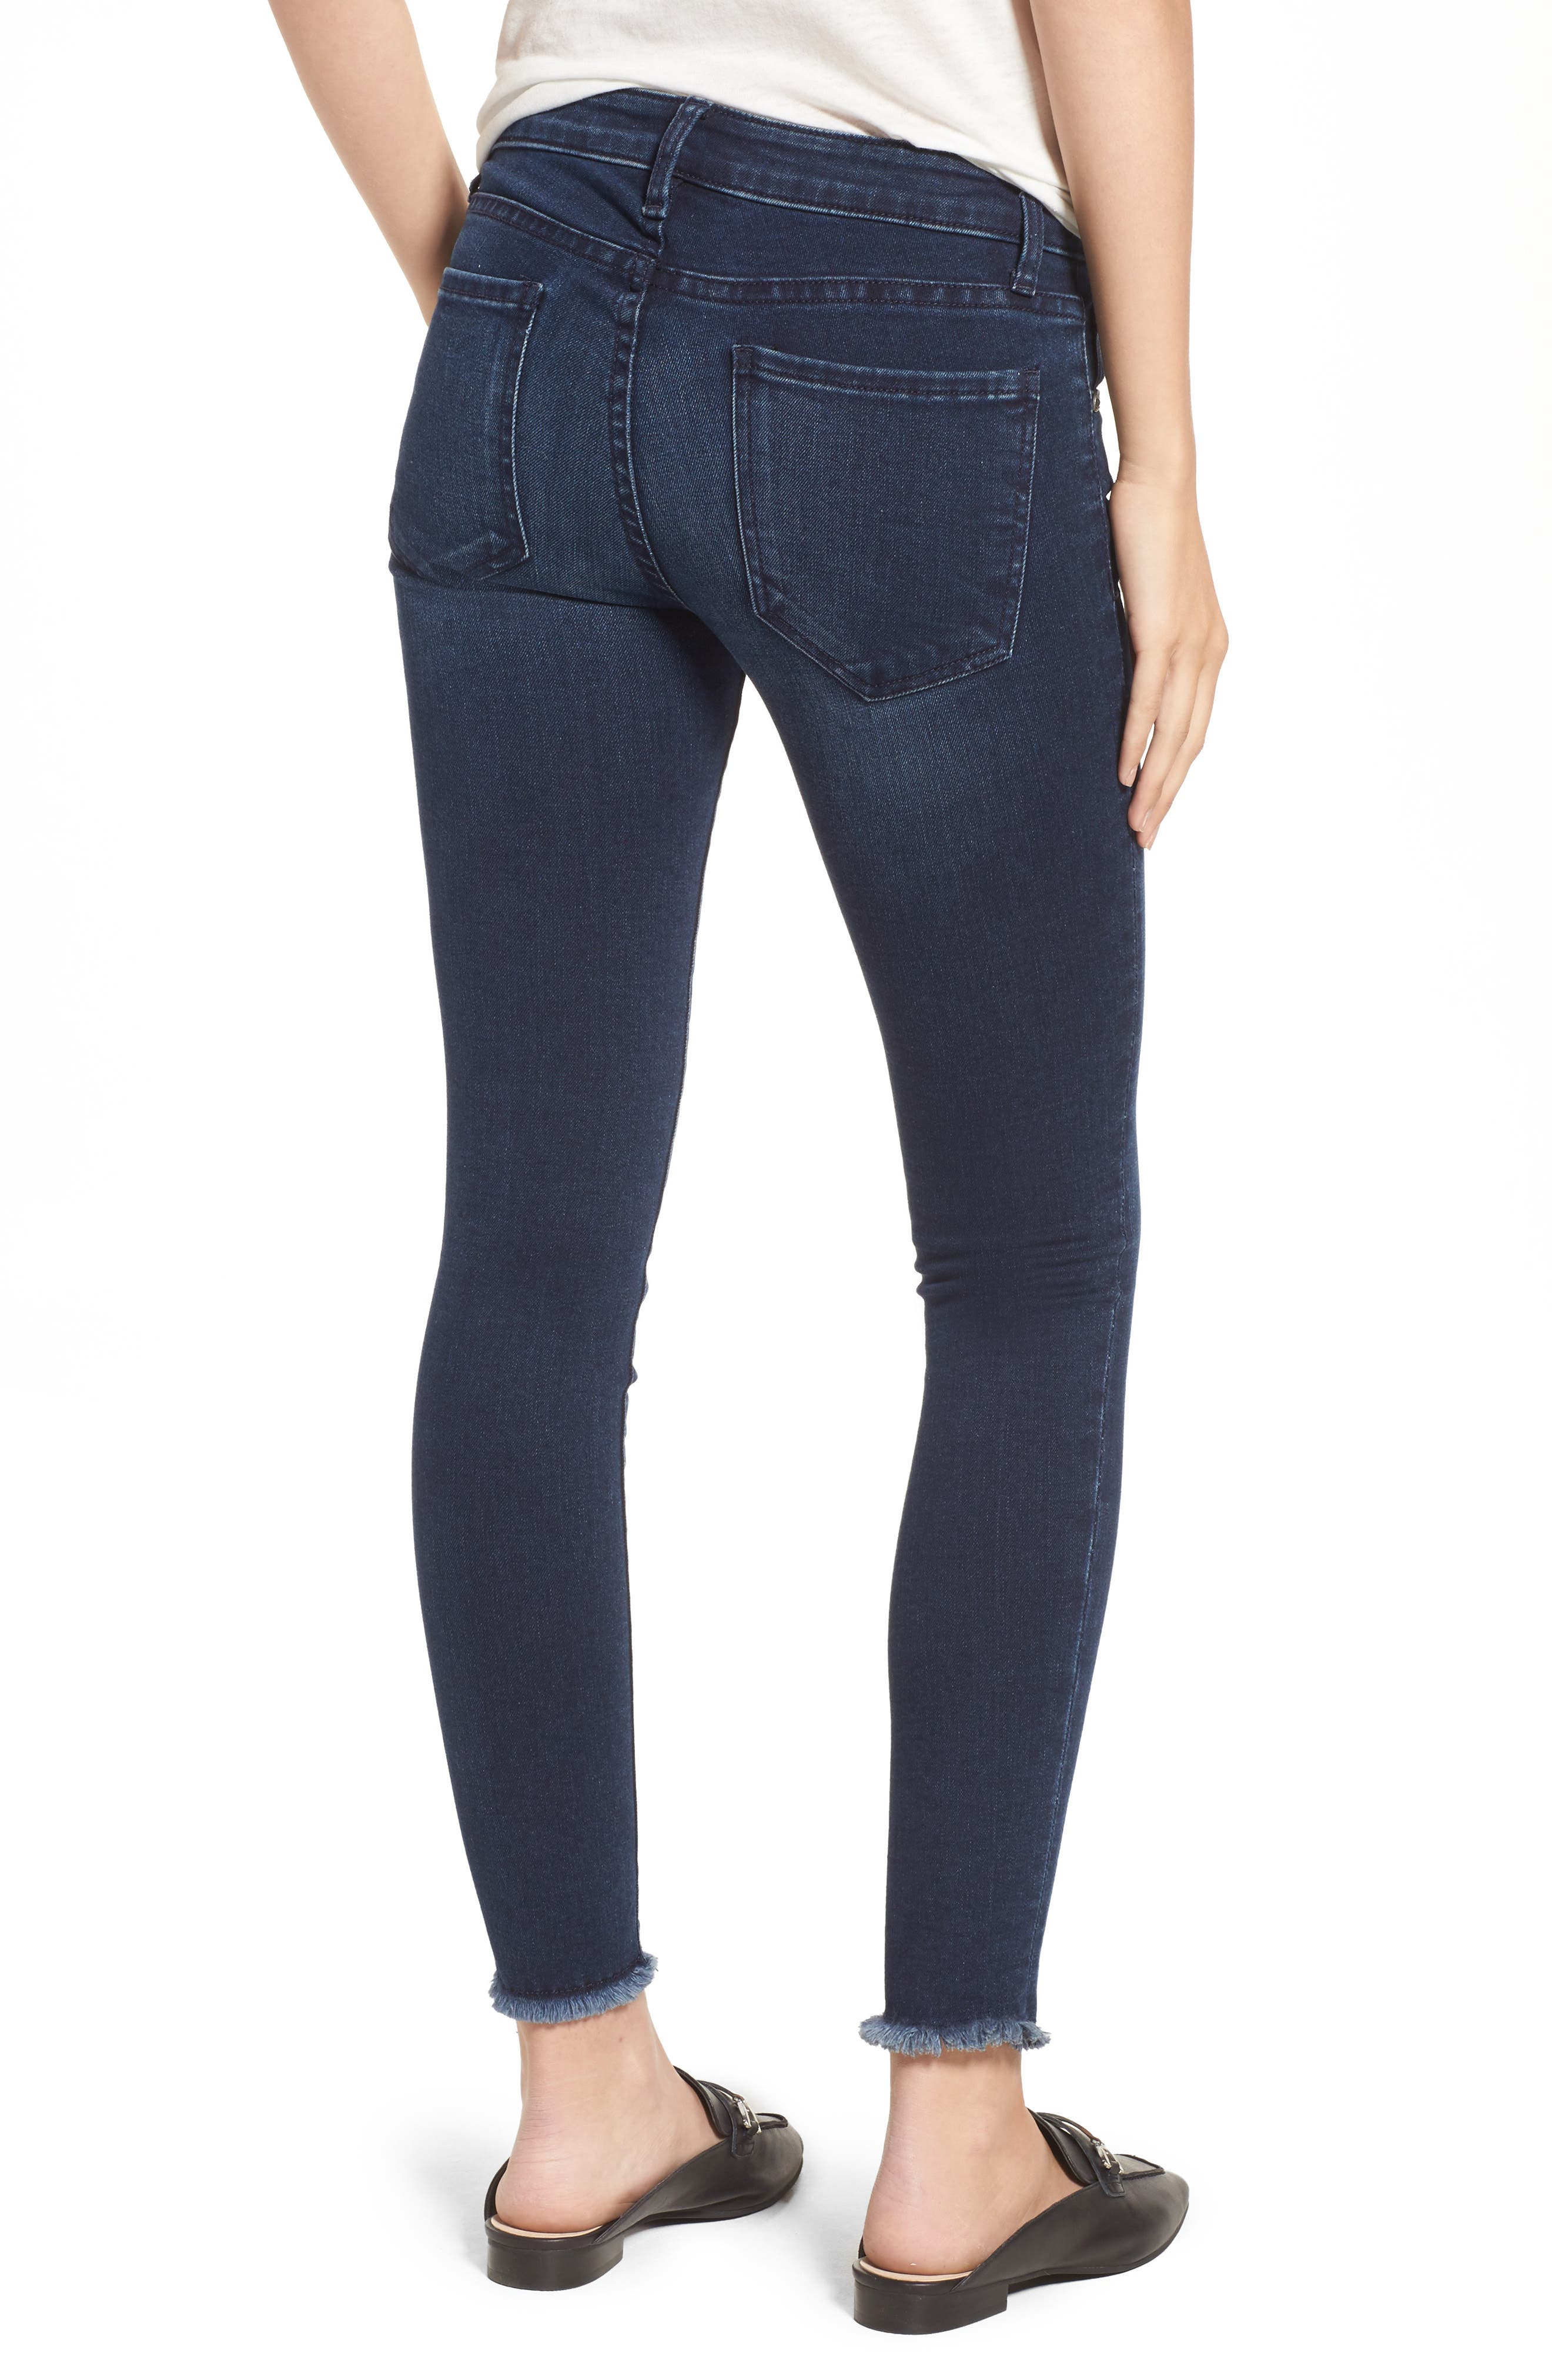 Alternate Image 3  - KUT from the Kloth Connie Skinny Ankle Jeans (Bloomed) (Regular & Petite)